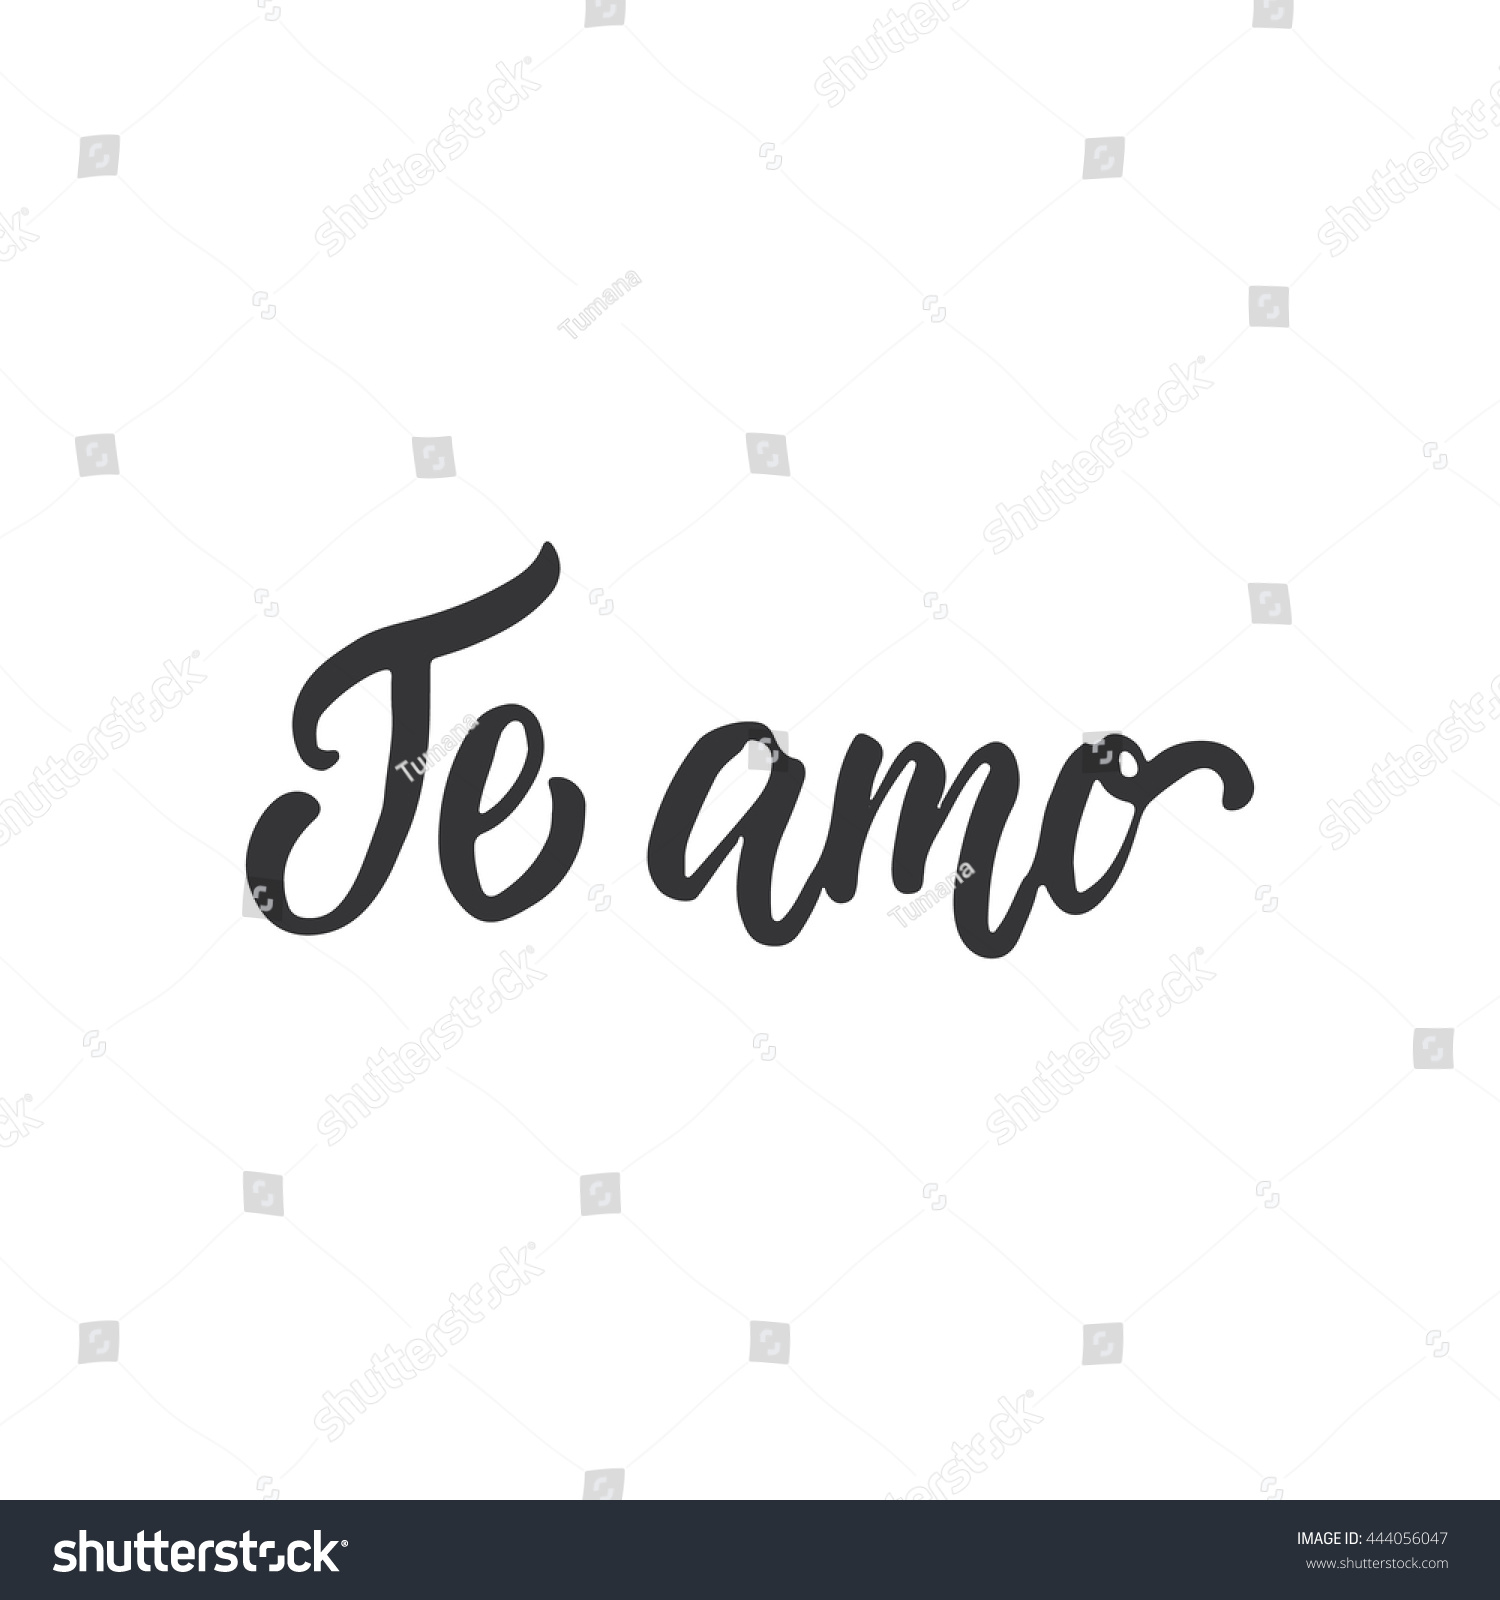 Te amo love you lettering calligraphy stock vector I love you calligraphy